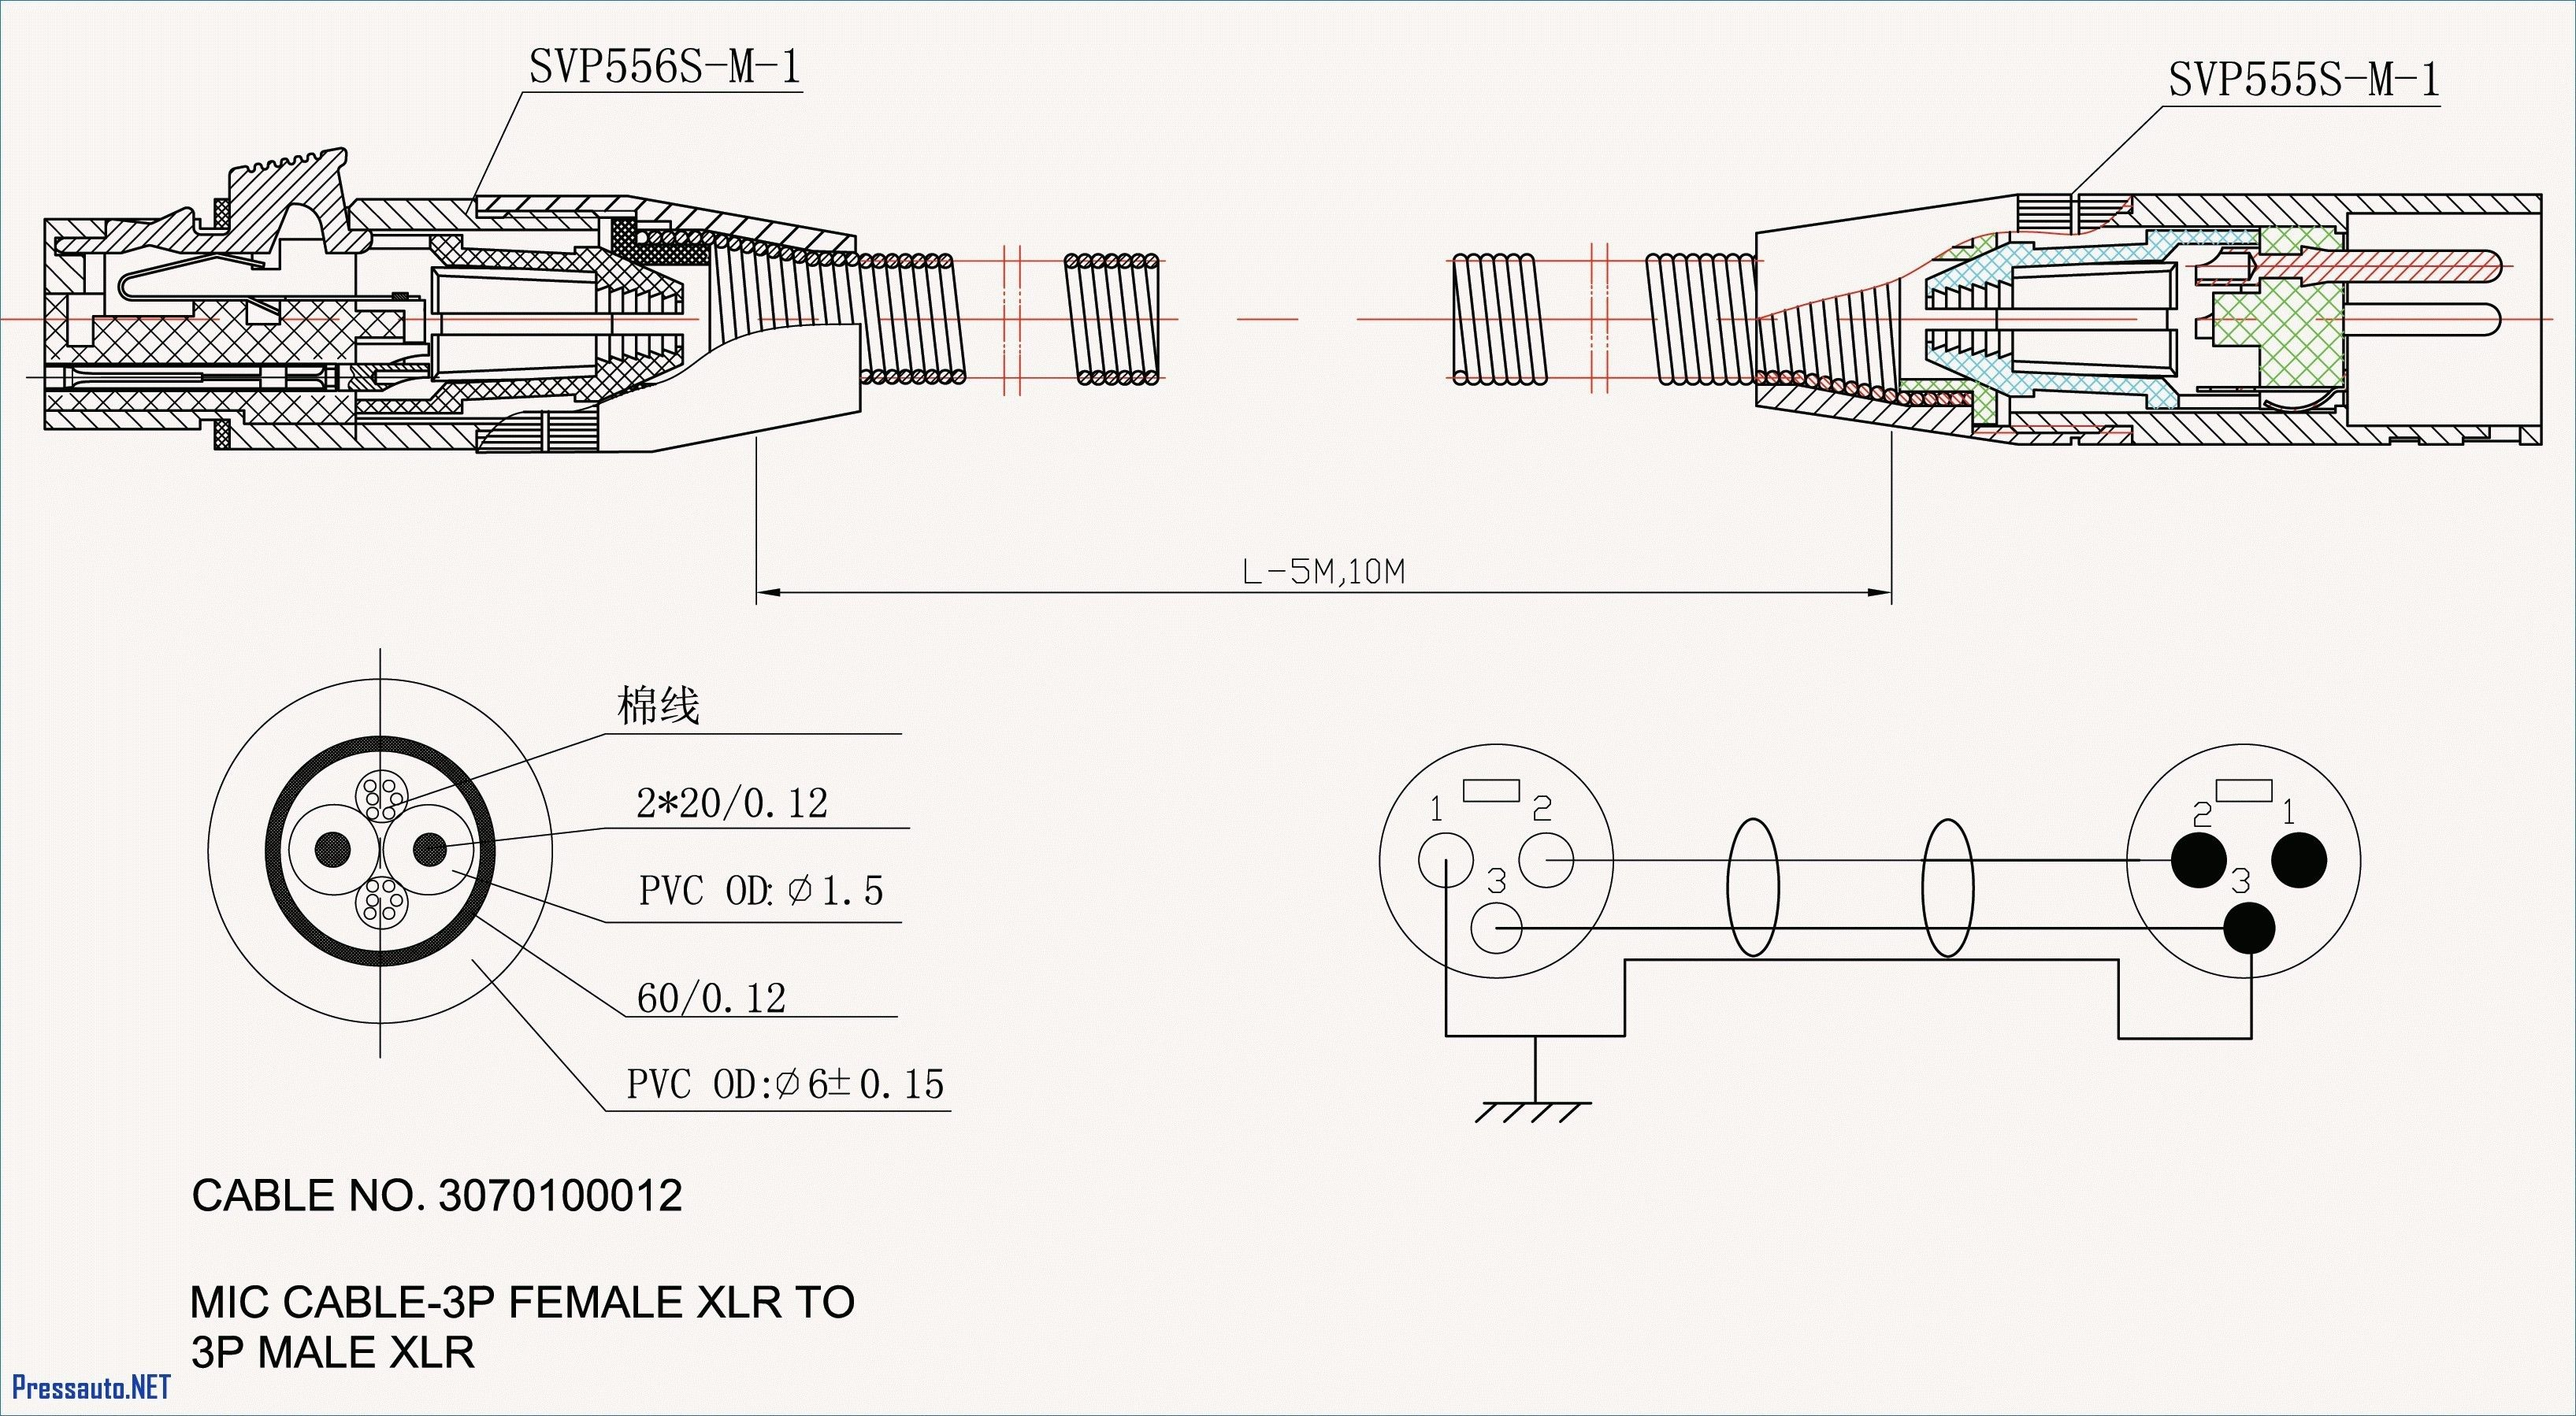 One Wire Alternator Diagram In 2020 Electrical Wiring Diagram Alternator Diagram